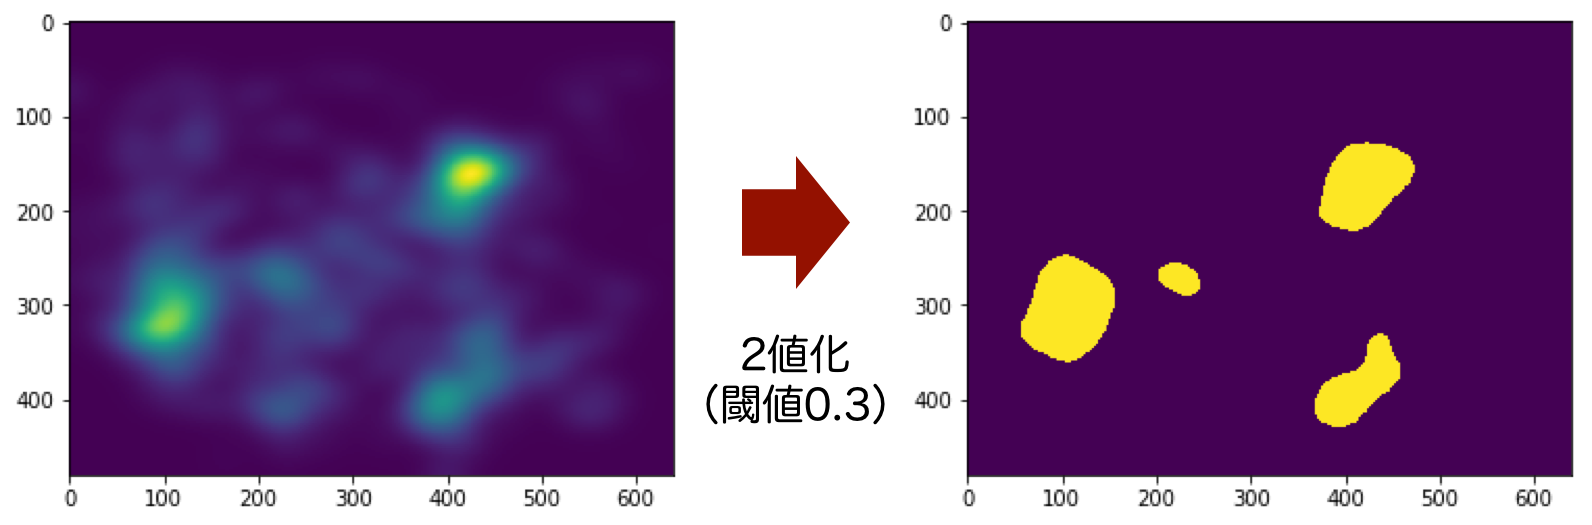 fig3.png